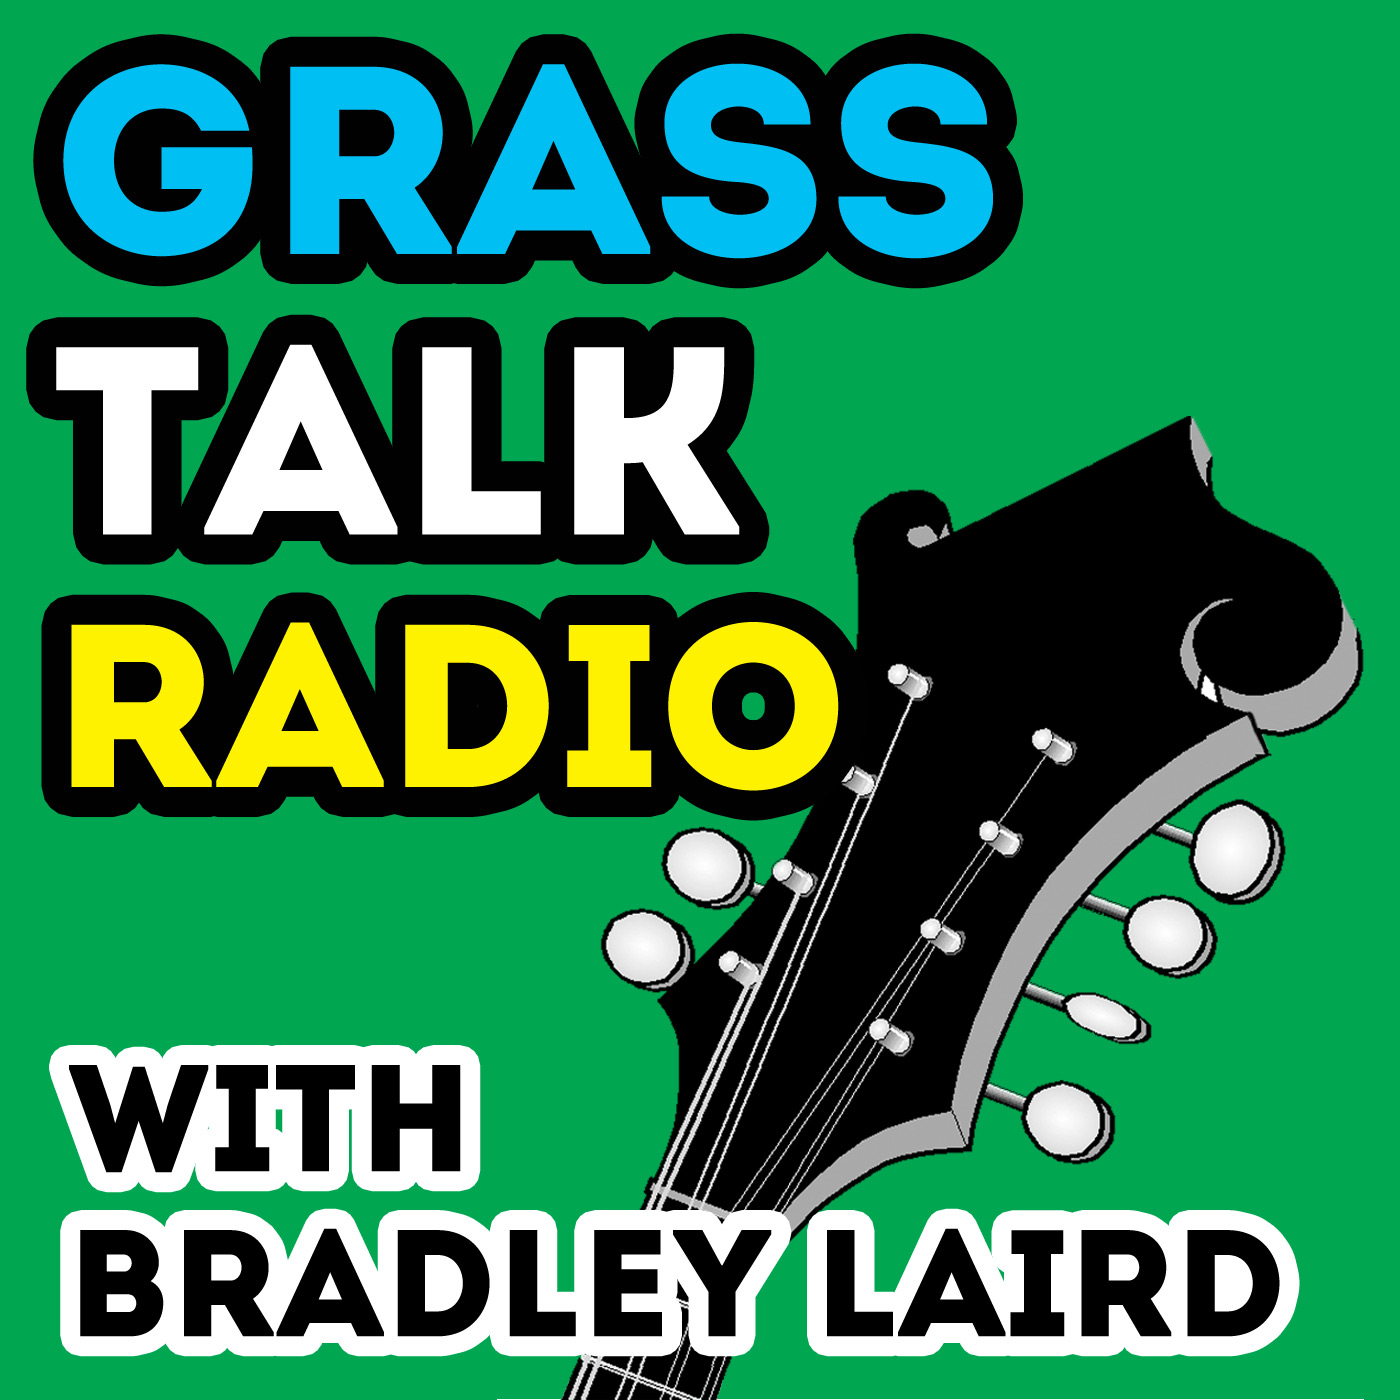 Bradley Laird's Grass Talk Radio - Bluegrass